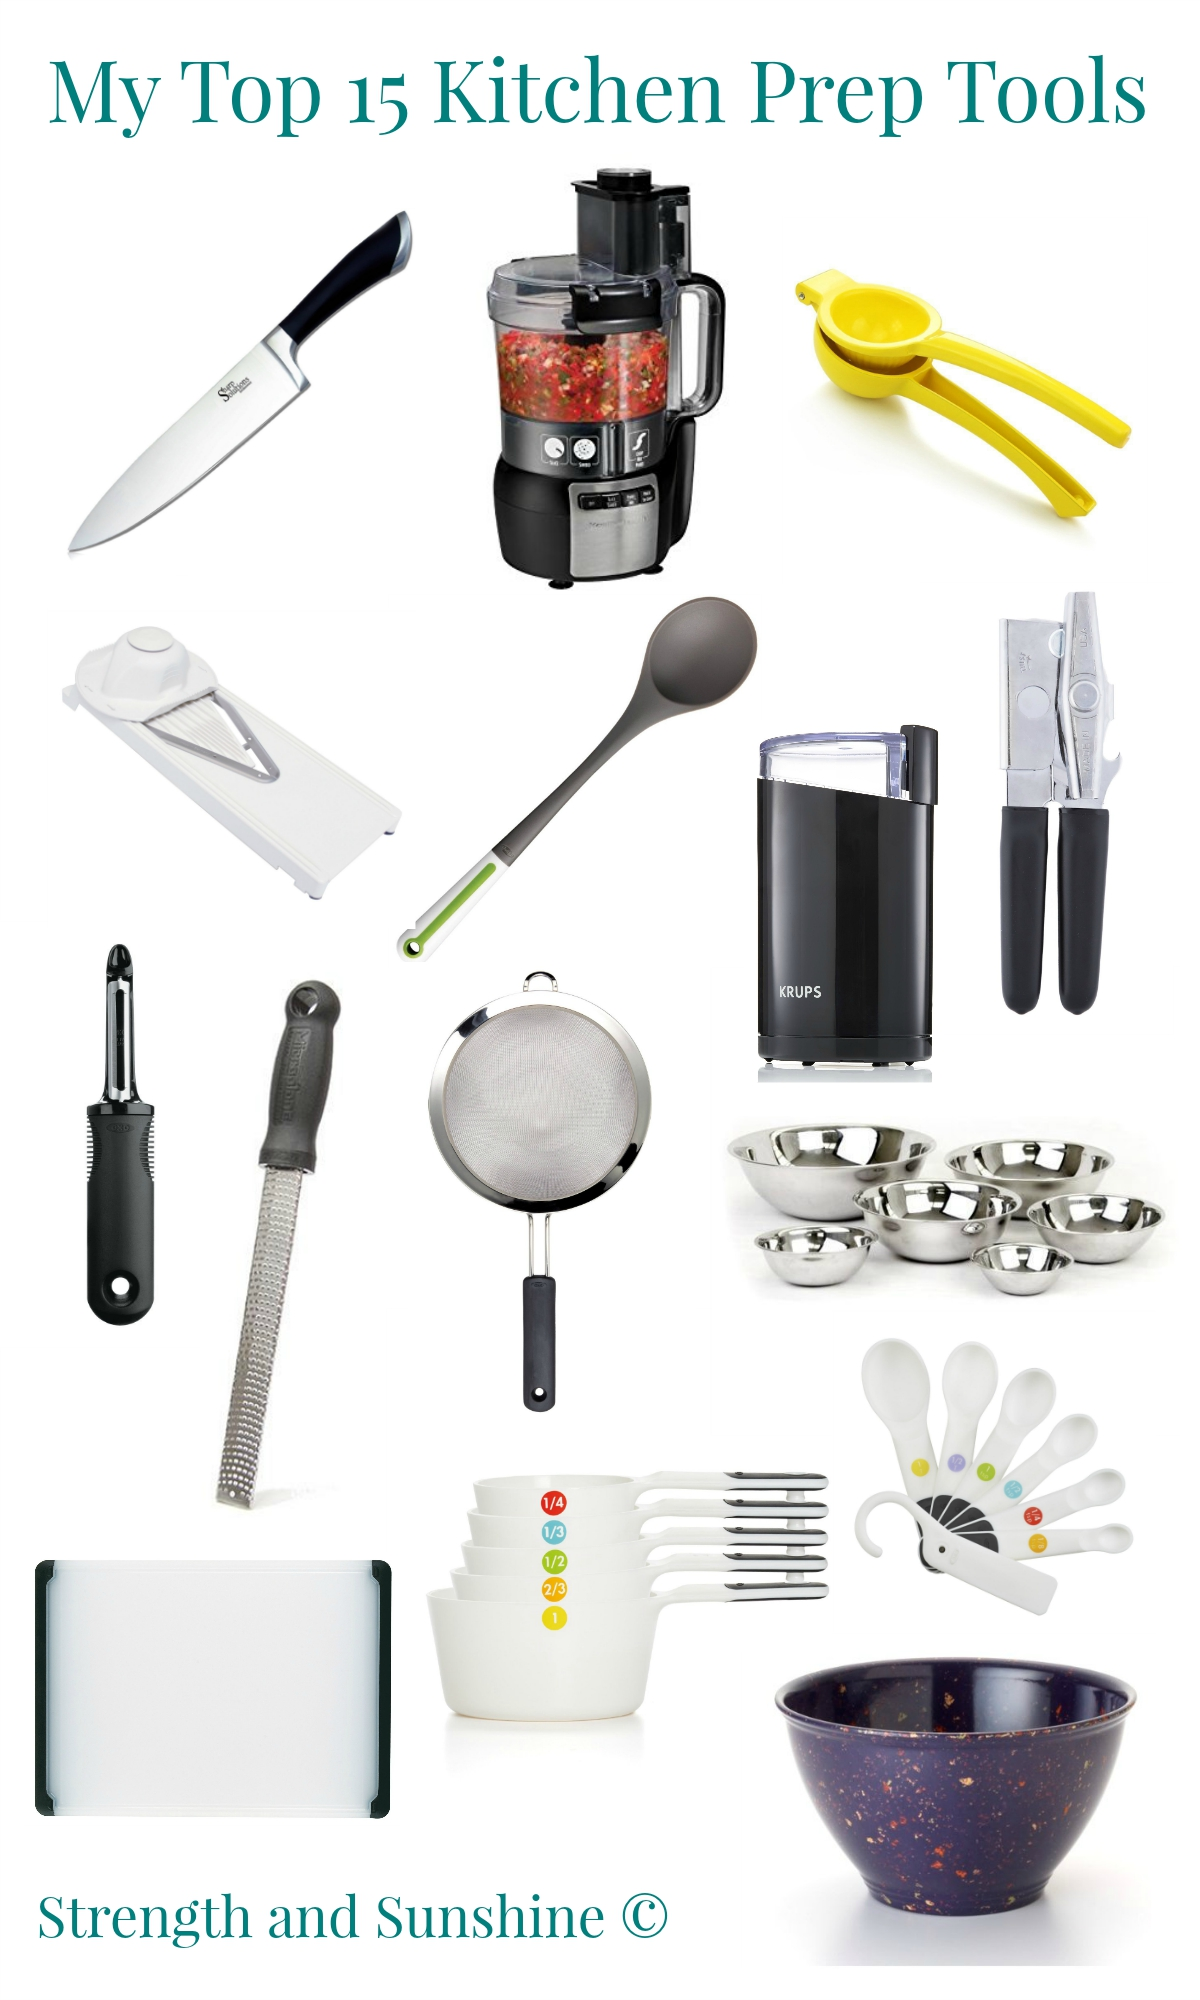 My Top 15 Kitchen Prep Tools | Strength and Sunshine @RebeccaGF666